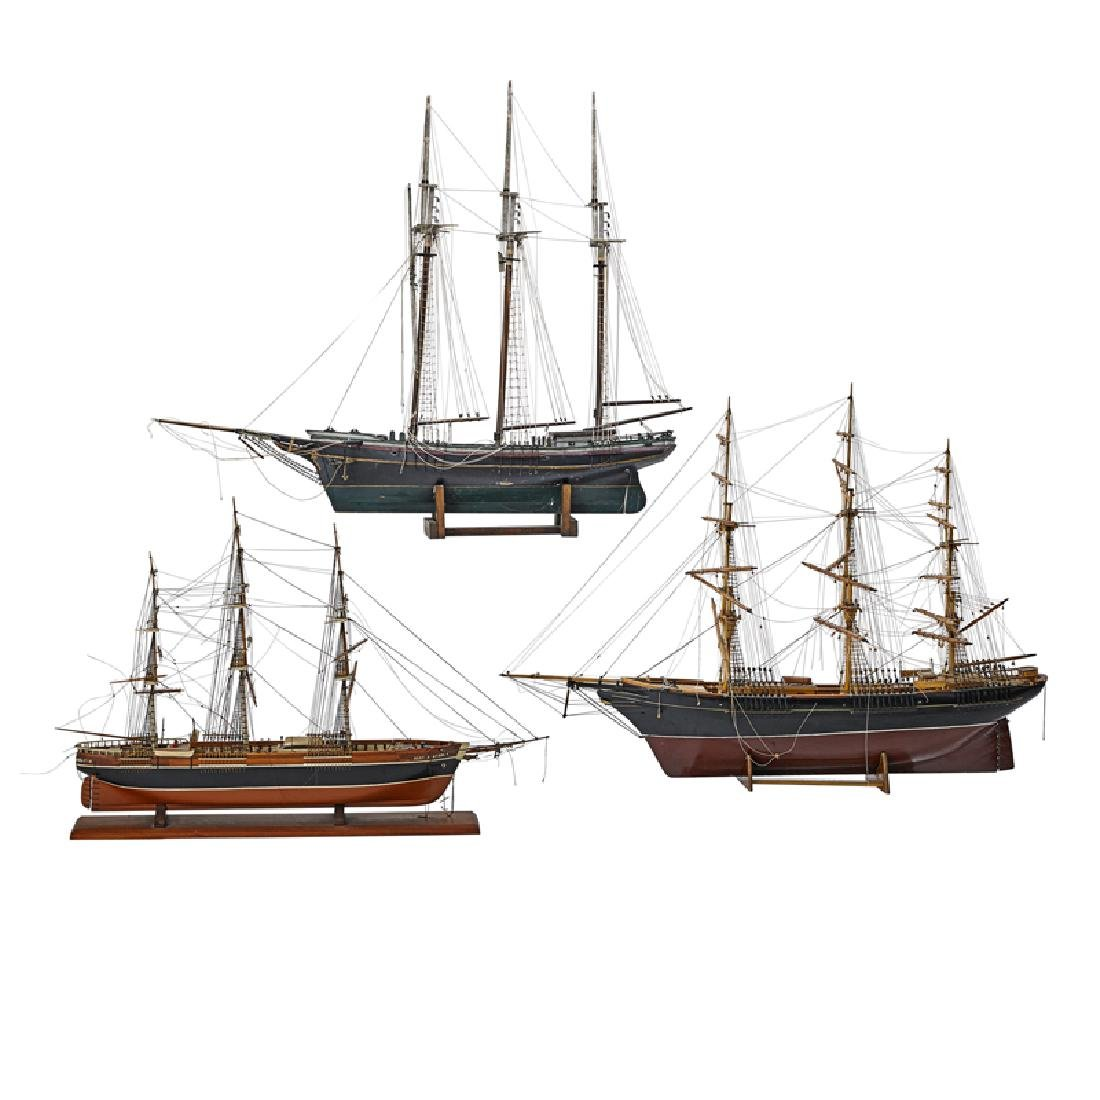 GROUP OF SHIP MODELS